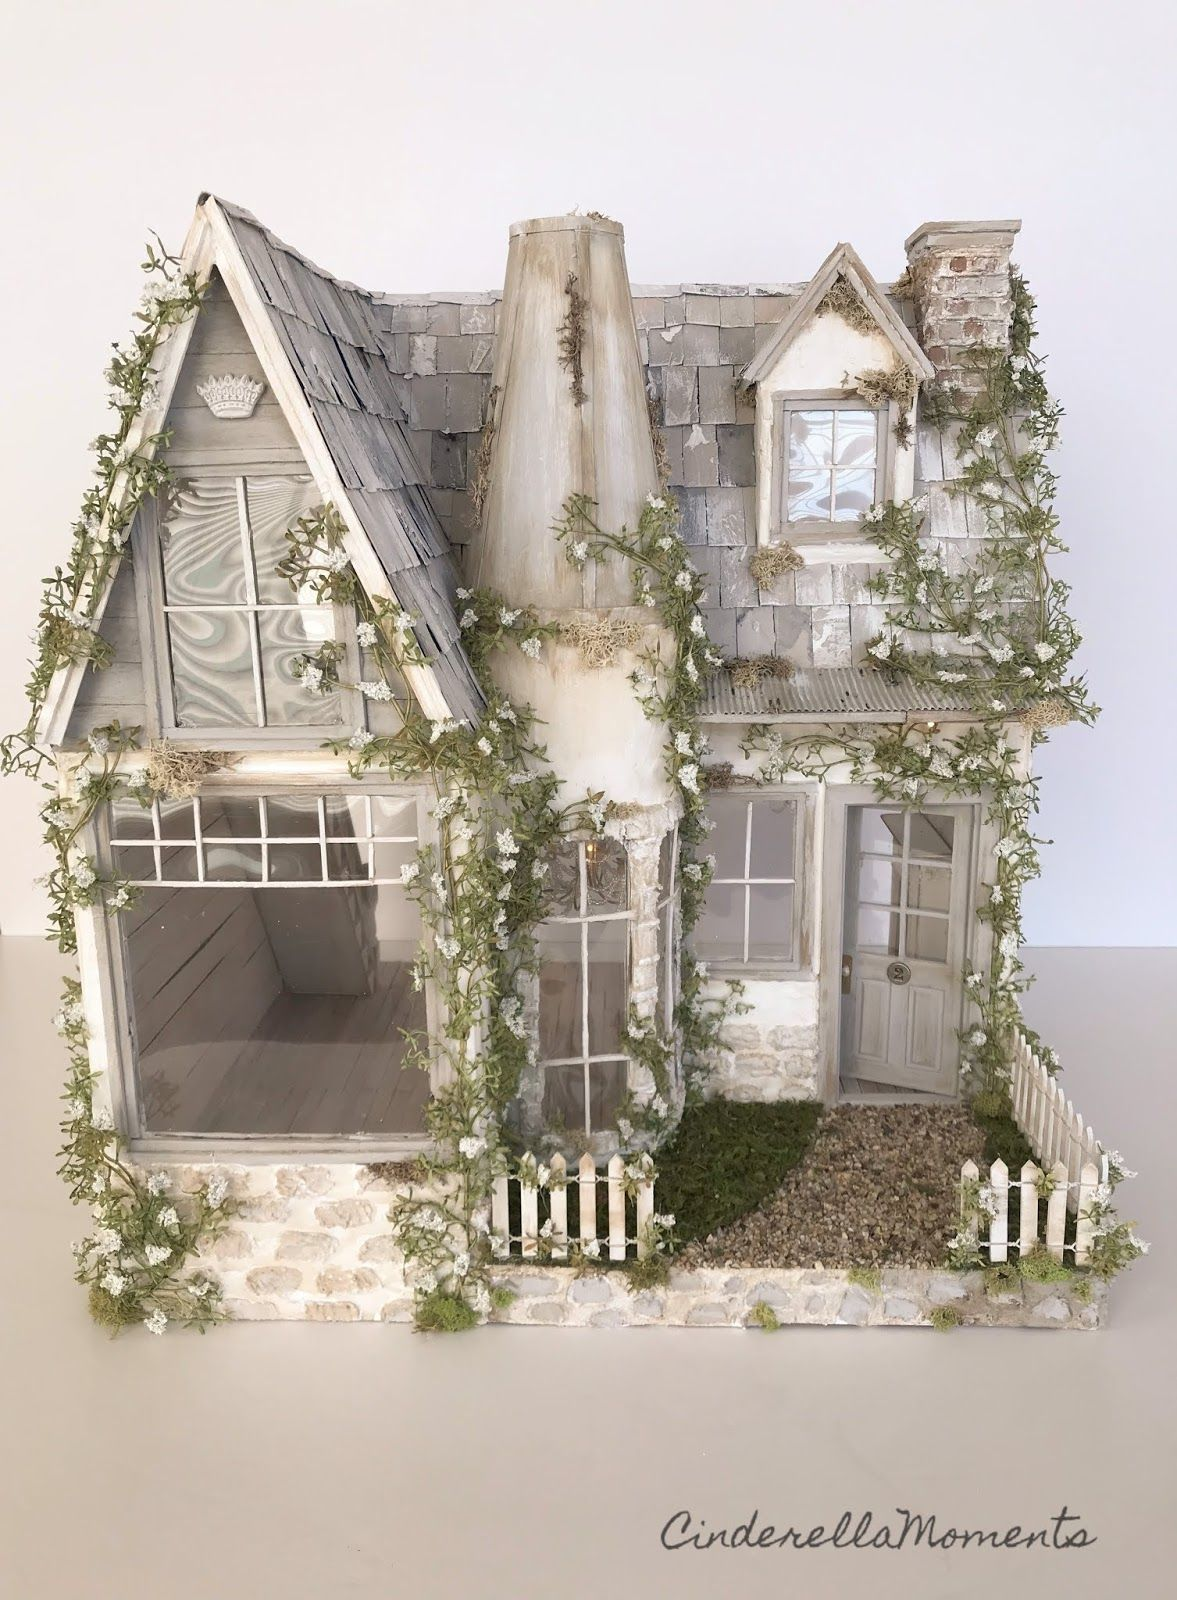 Chestnut Hill Cottage by Cinderella Moments #witchcottage